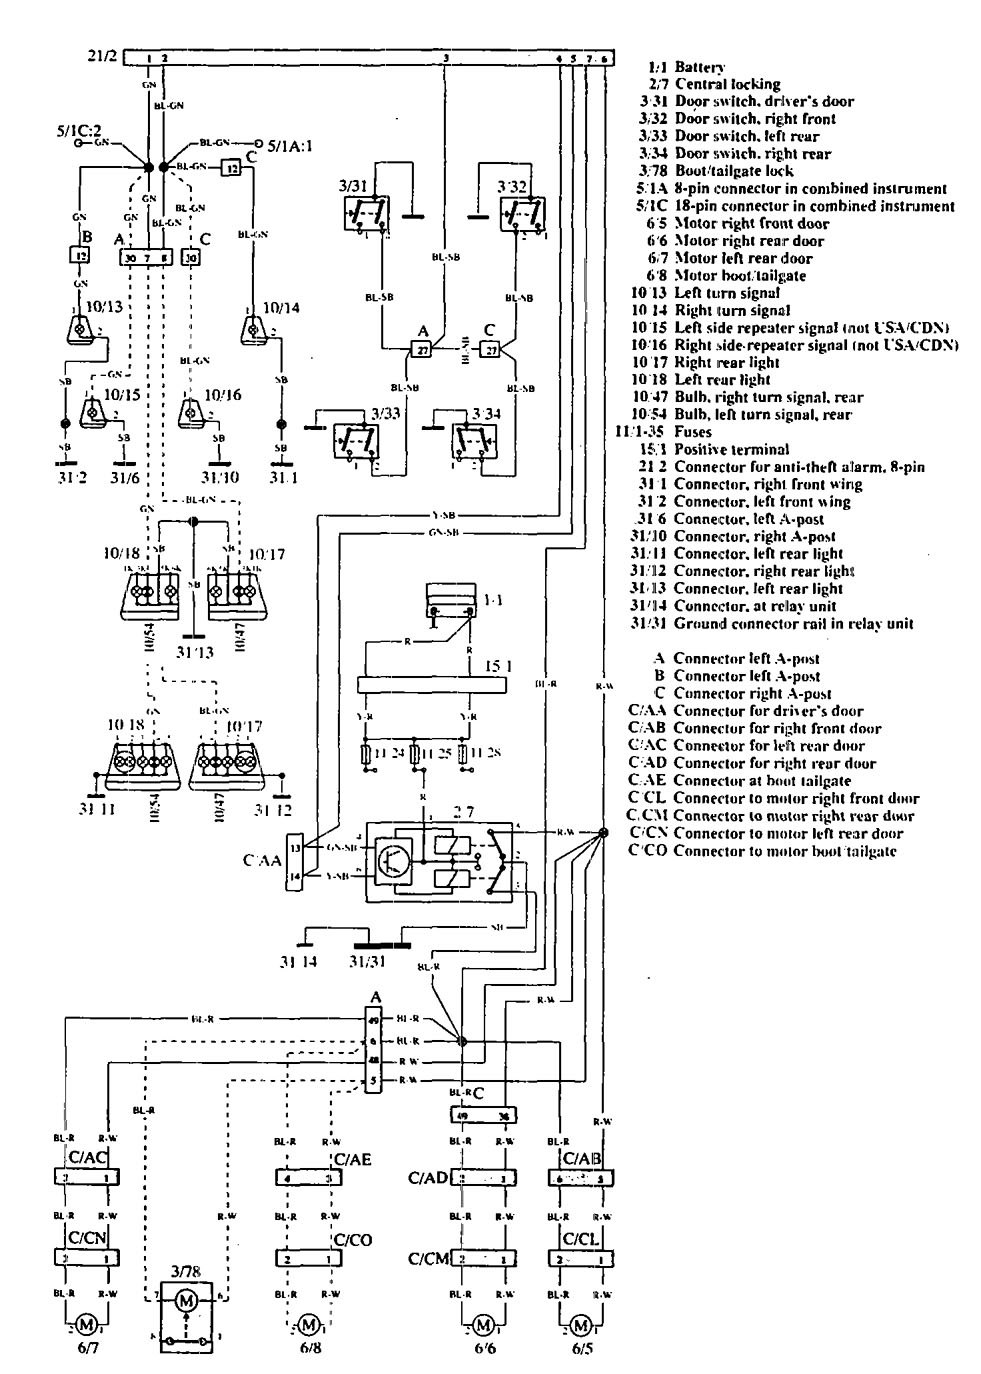 volvo 960 wiring diagram securoty anti theft 1 1992 volvo 960 (1992 1994) wiring diagrams security anti theft 1992 volvo 960 radio wiring diagram at creativeand.co